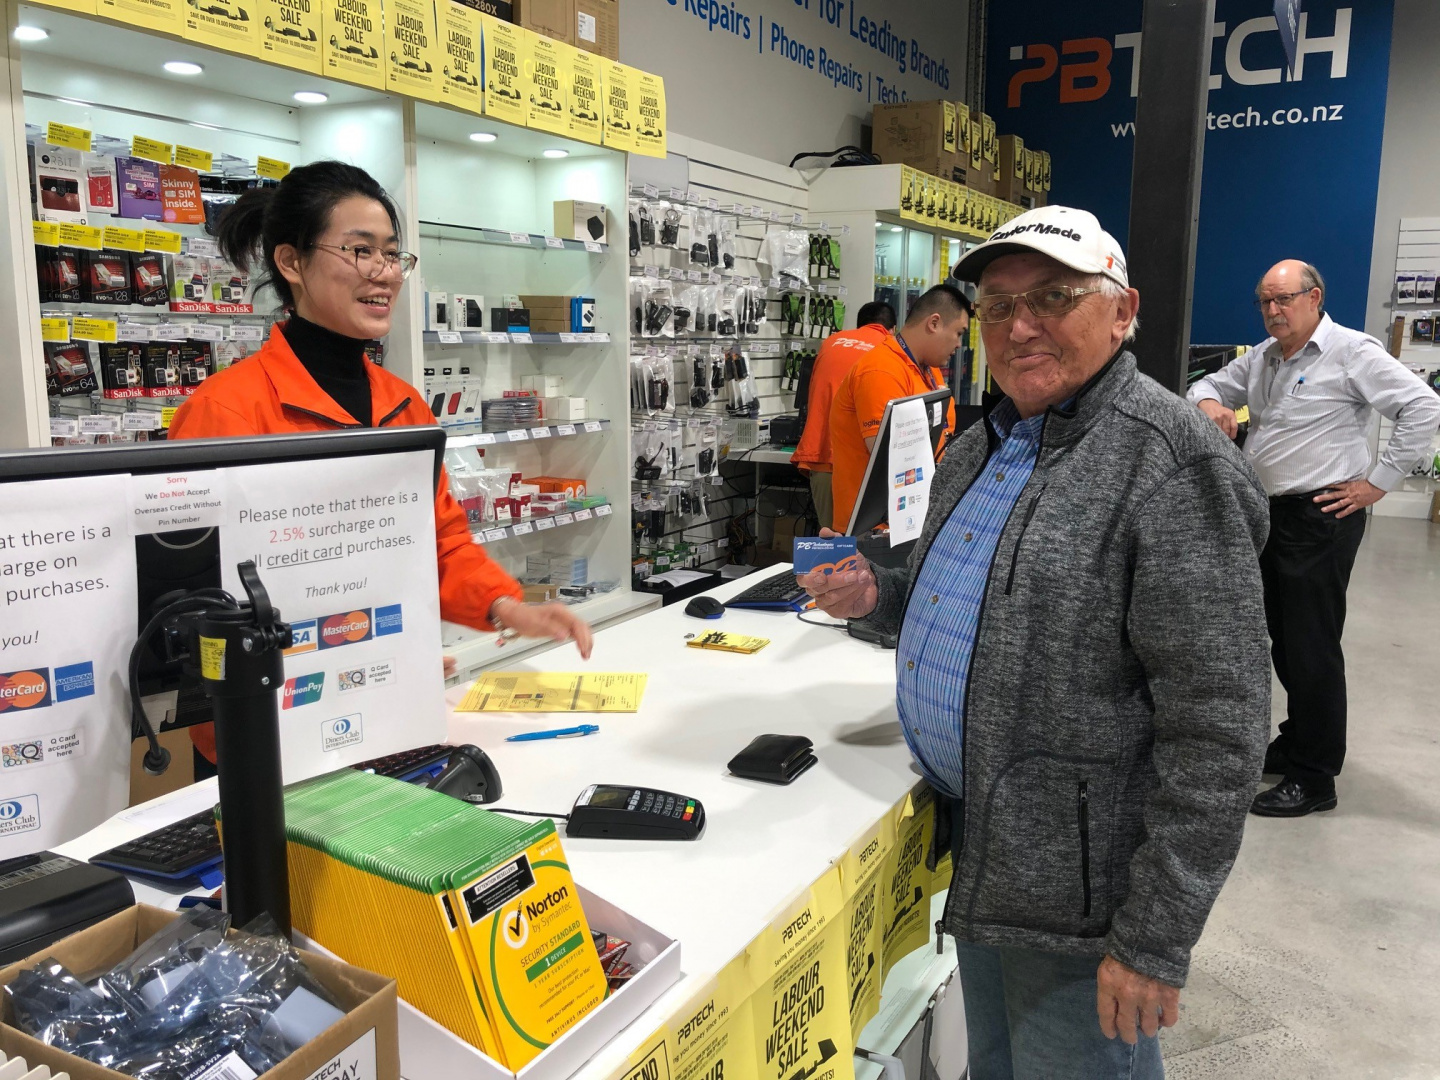 Albany Grand Opening Sale Prize Winners Pbtech Co Nz